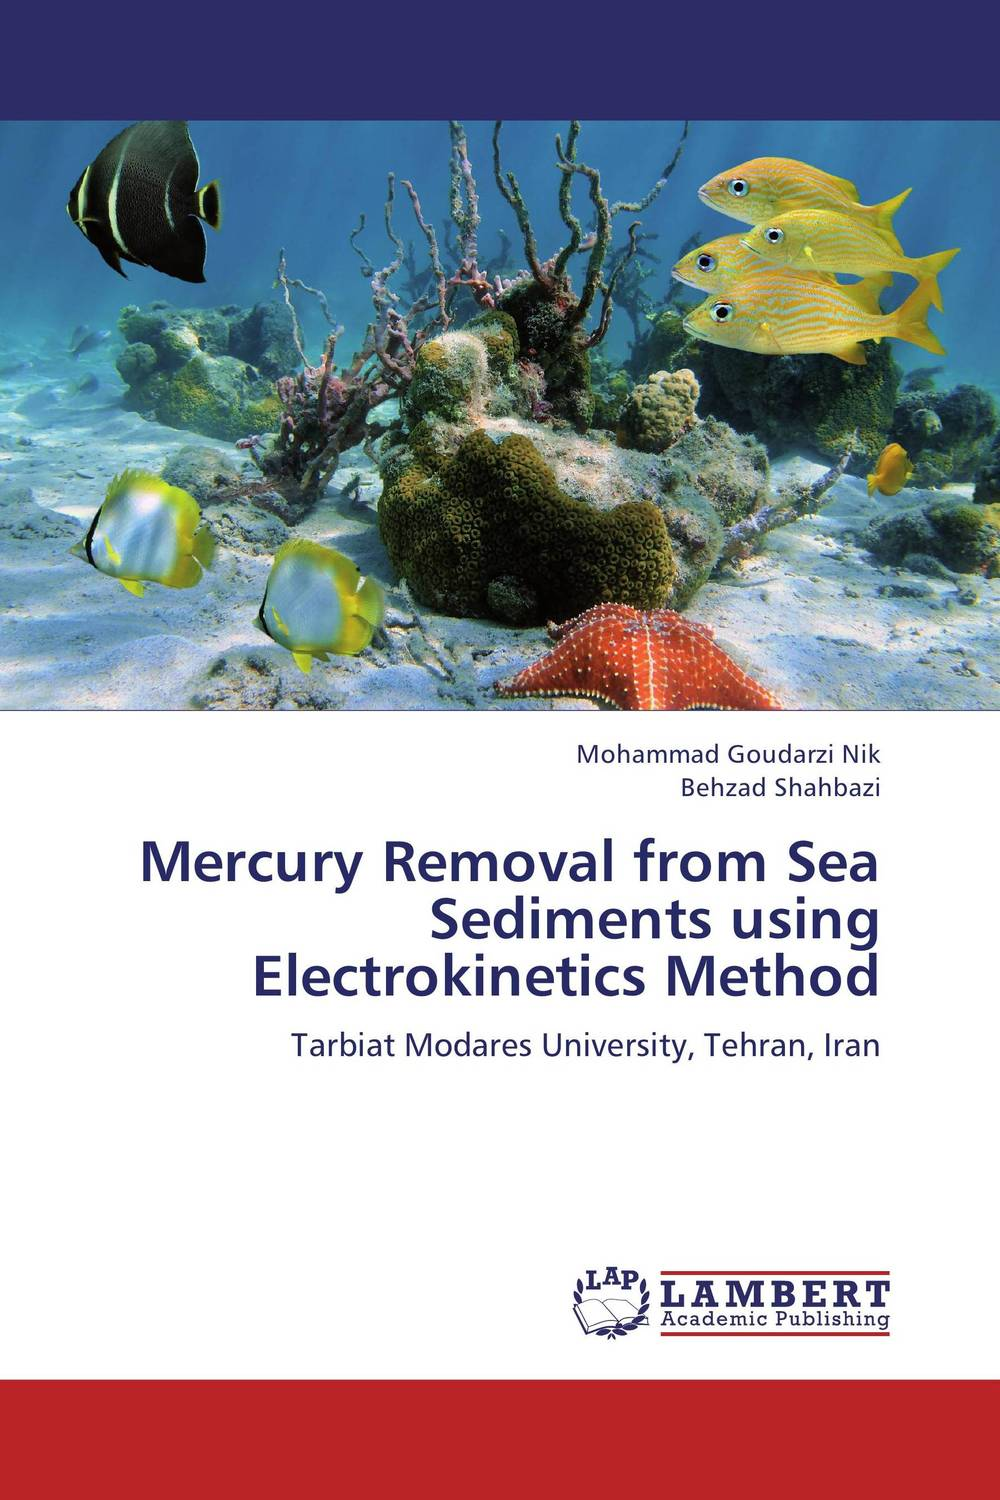 Mercury Removal from Sea Sediments using Electrokinetics Method sea of spa крем морковный универсальный 500 мл